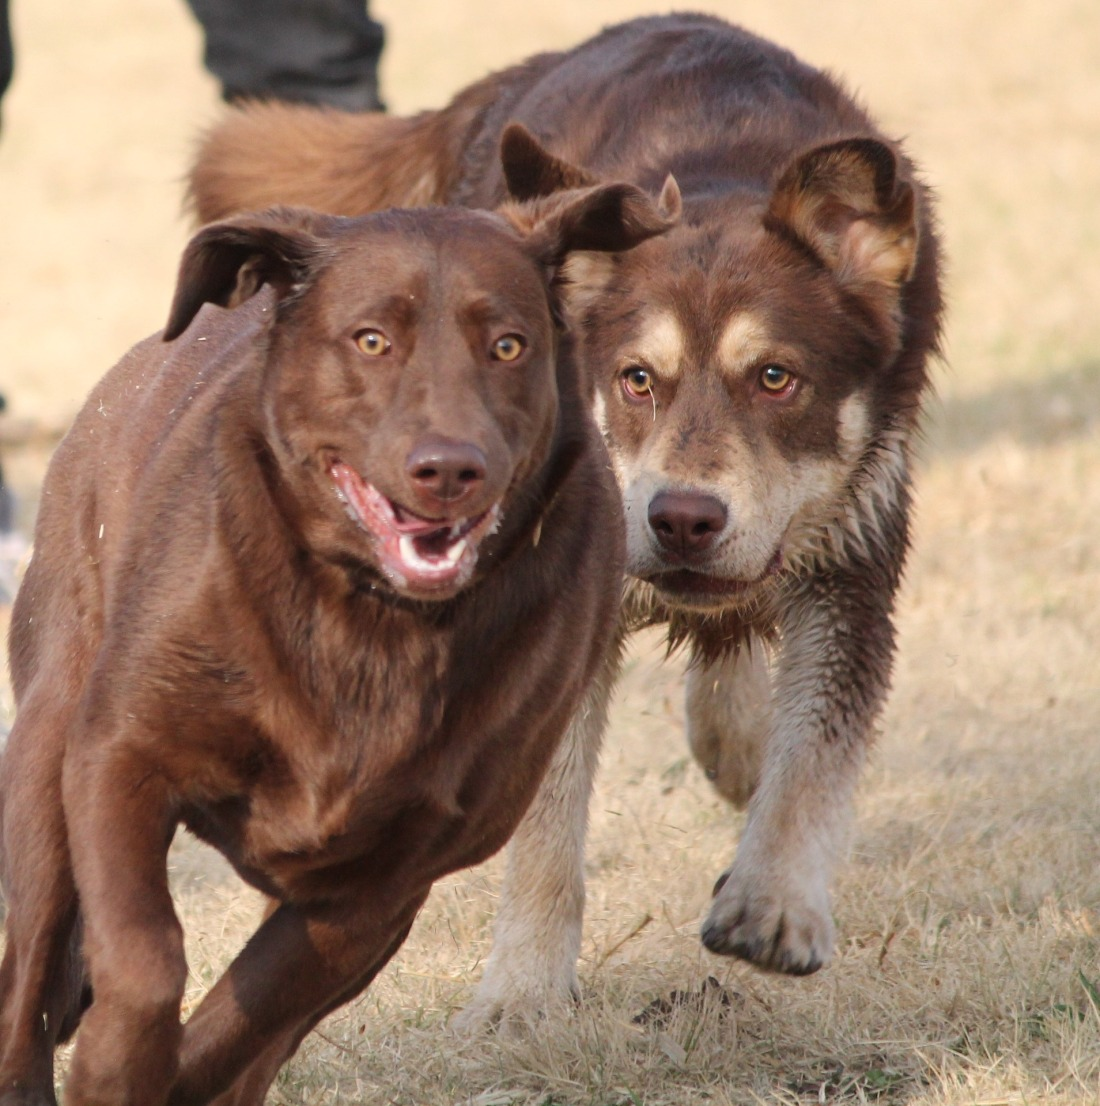 dogs-2690581_1920